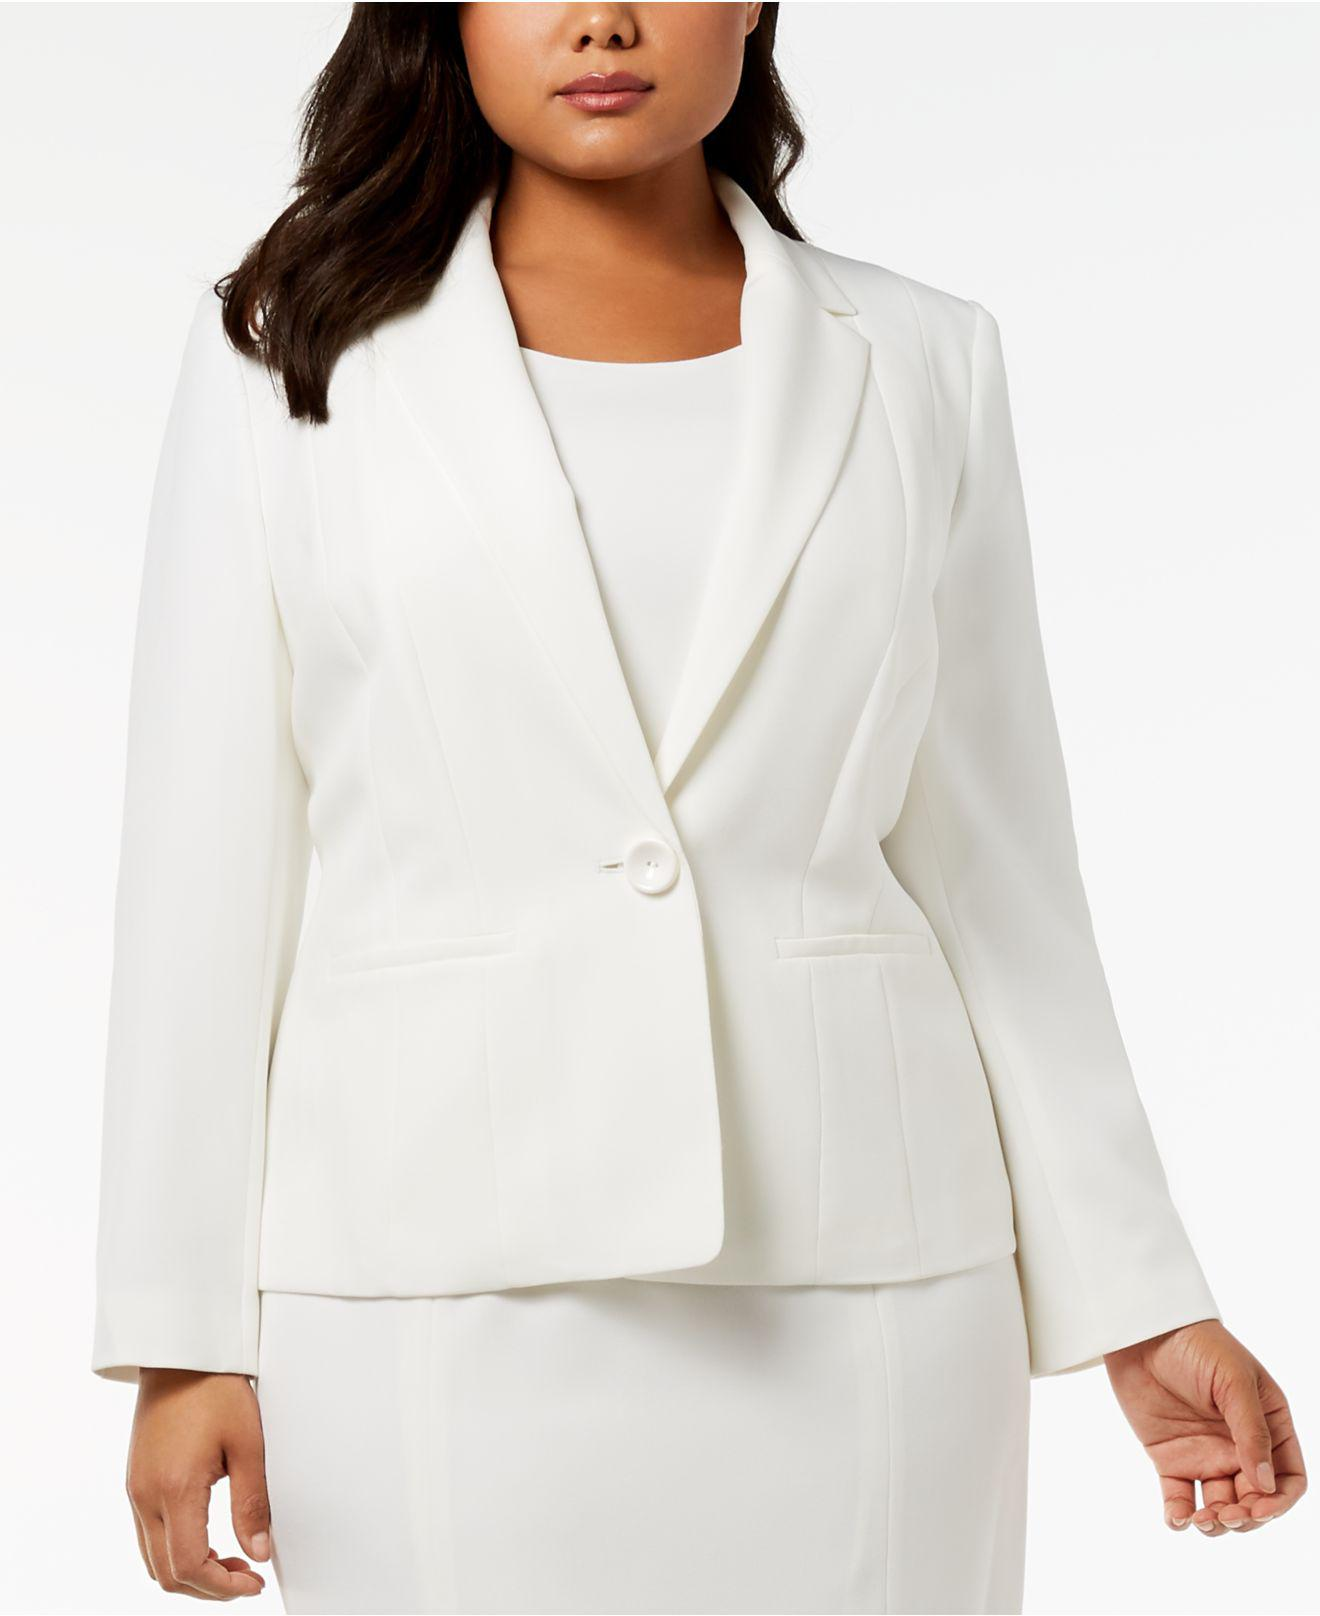 cc49c34d676 Lyst - Kasper Plus Size One-button Crepe Jacket in White